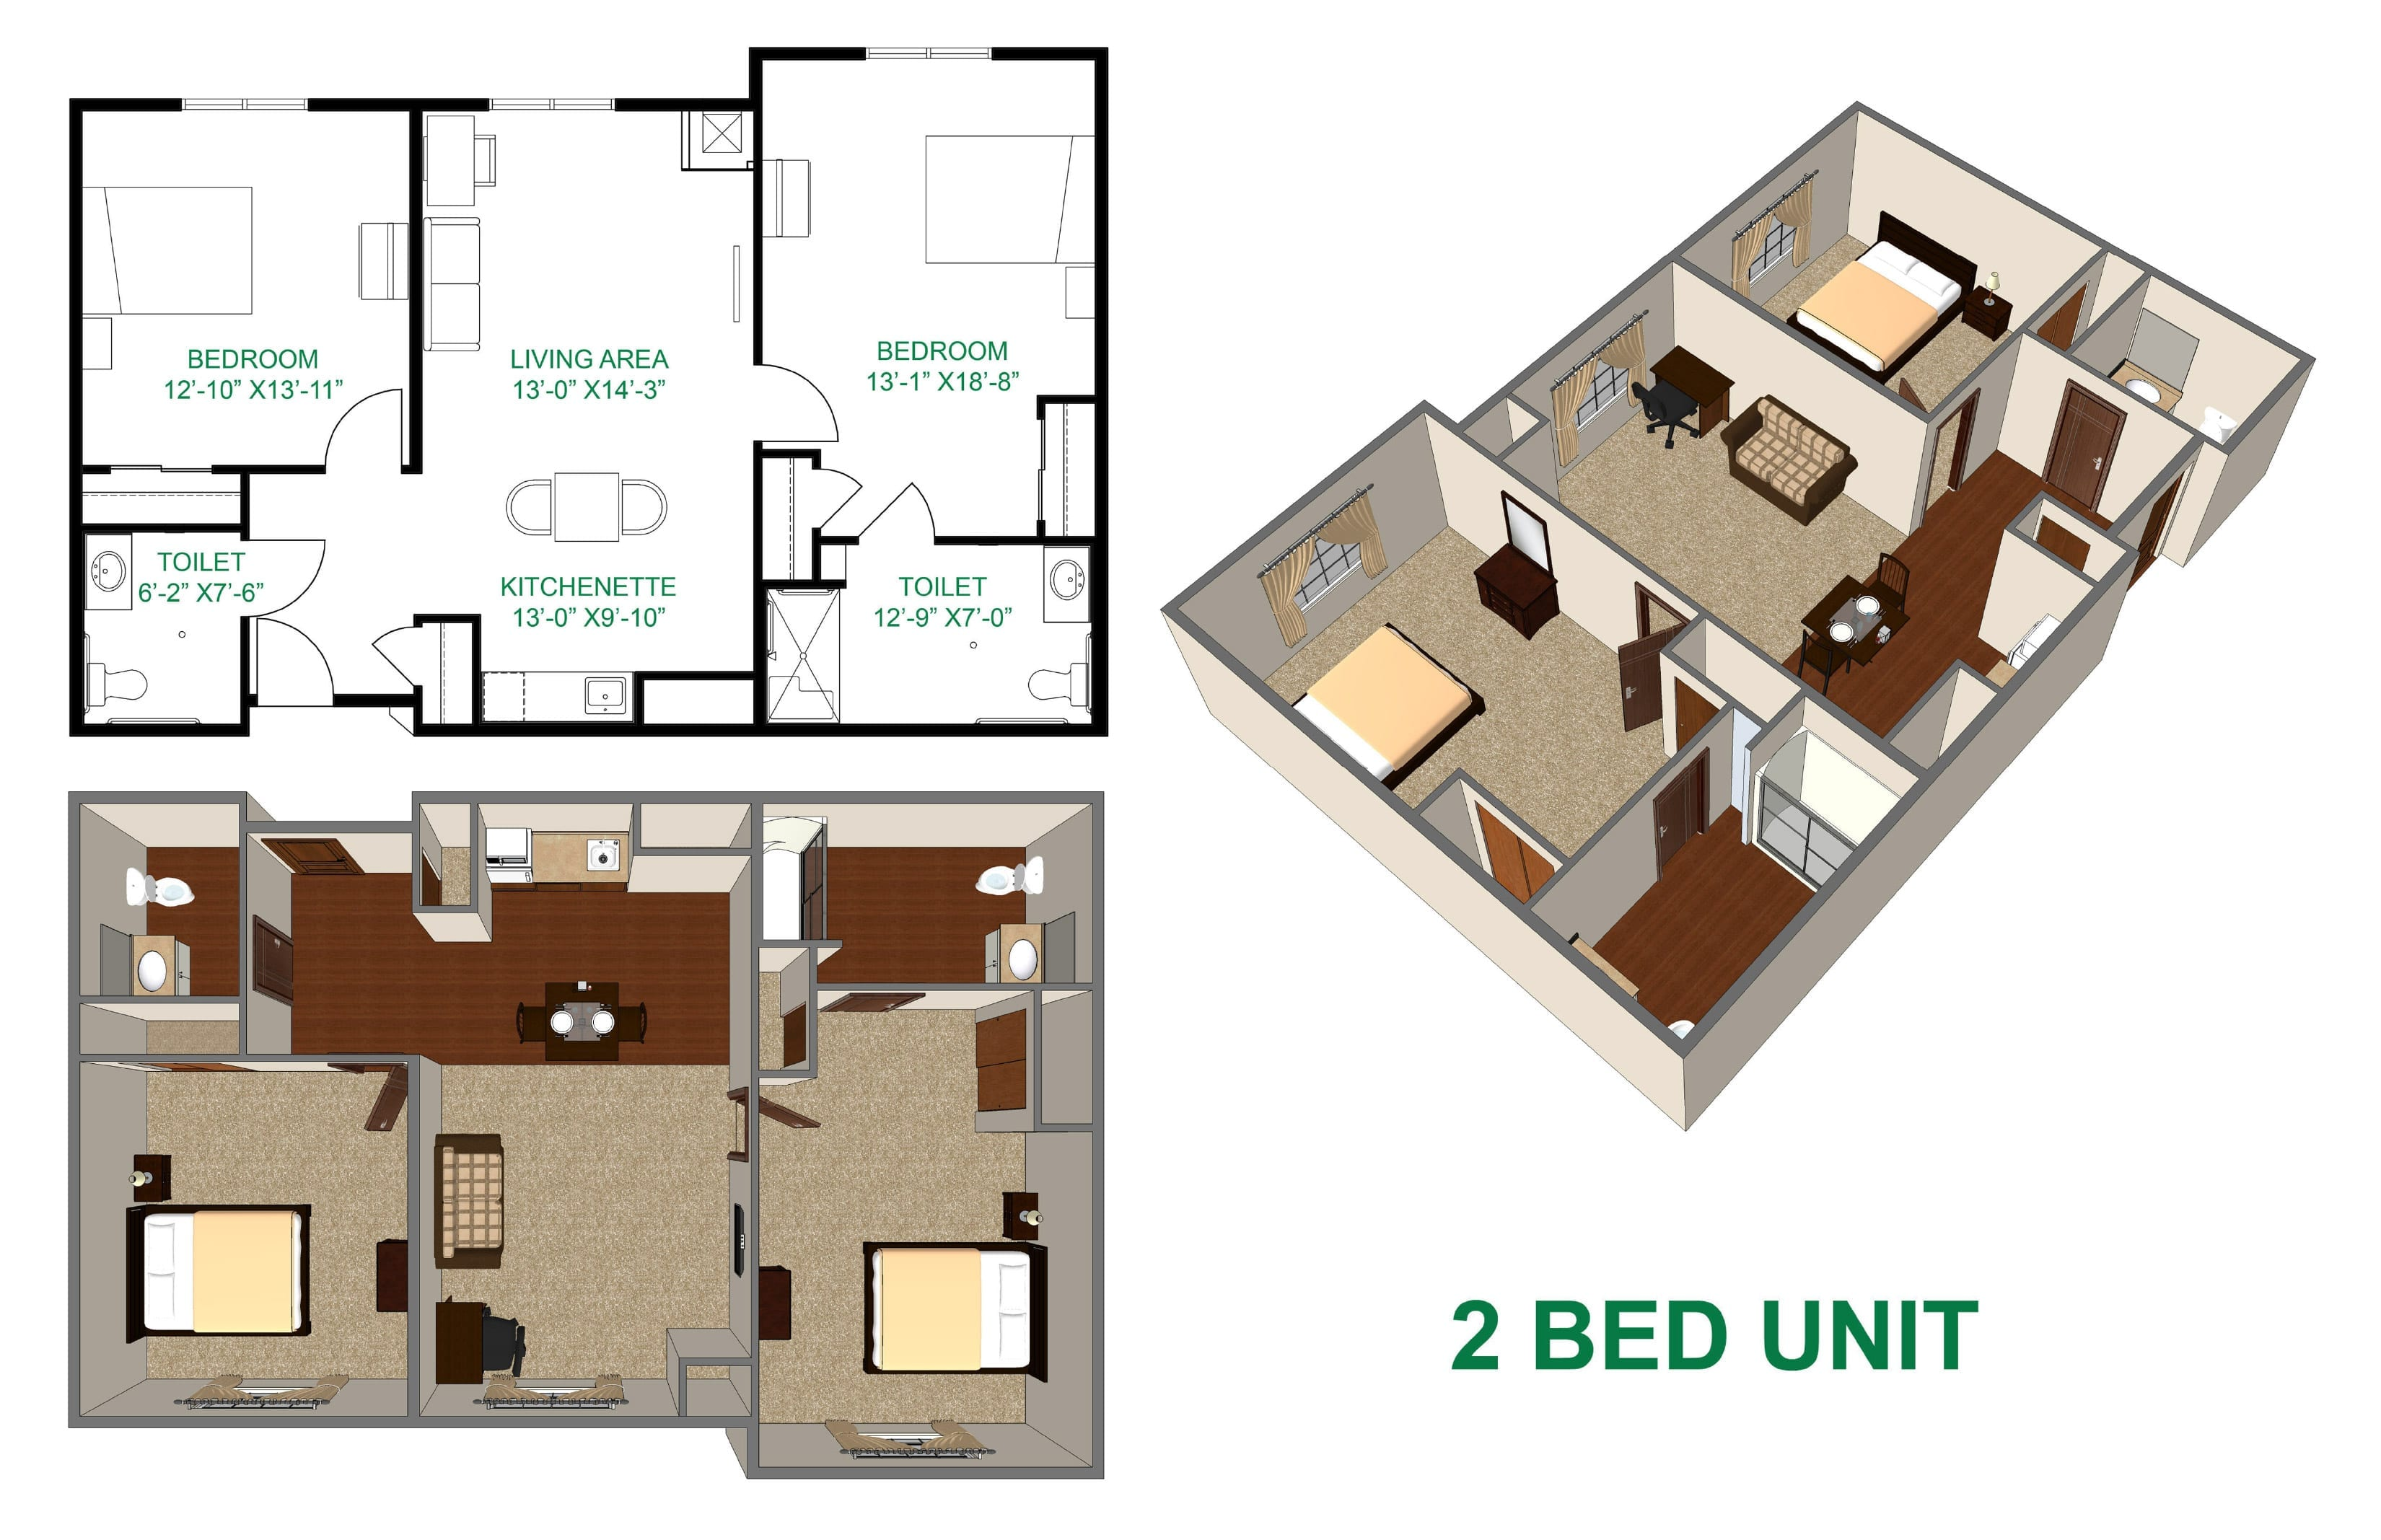 The Village at Skyline Pines assisted living 2 bedroom layout